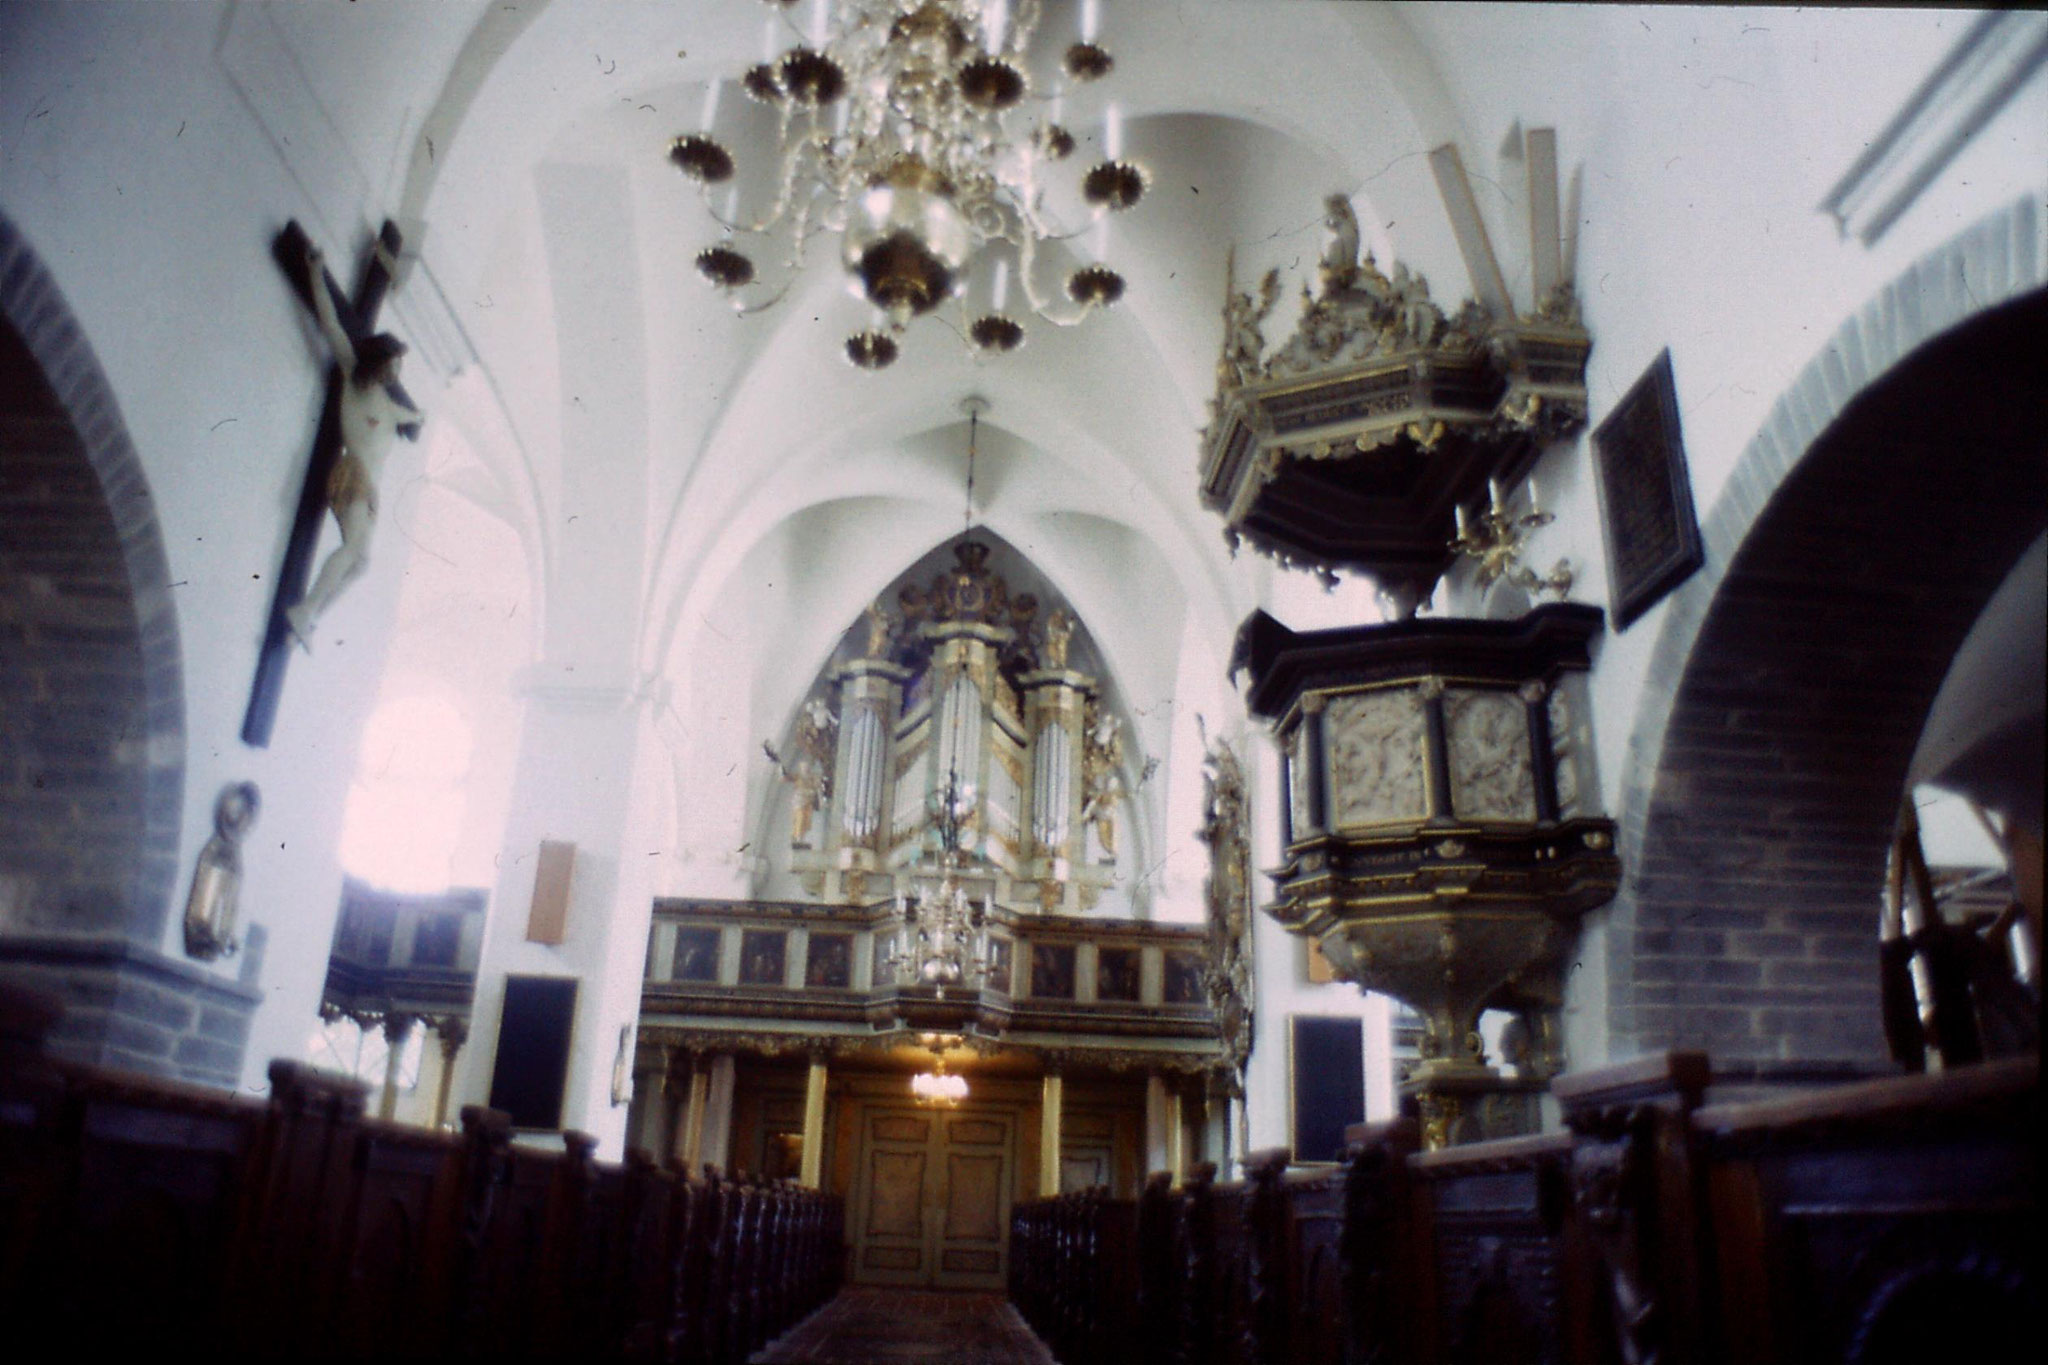 31/8/1988: 17: Ystad St Maria Church